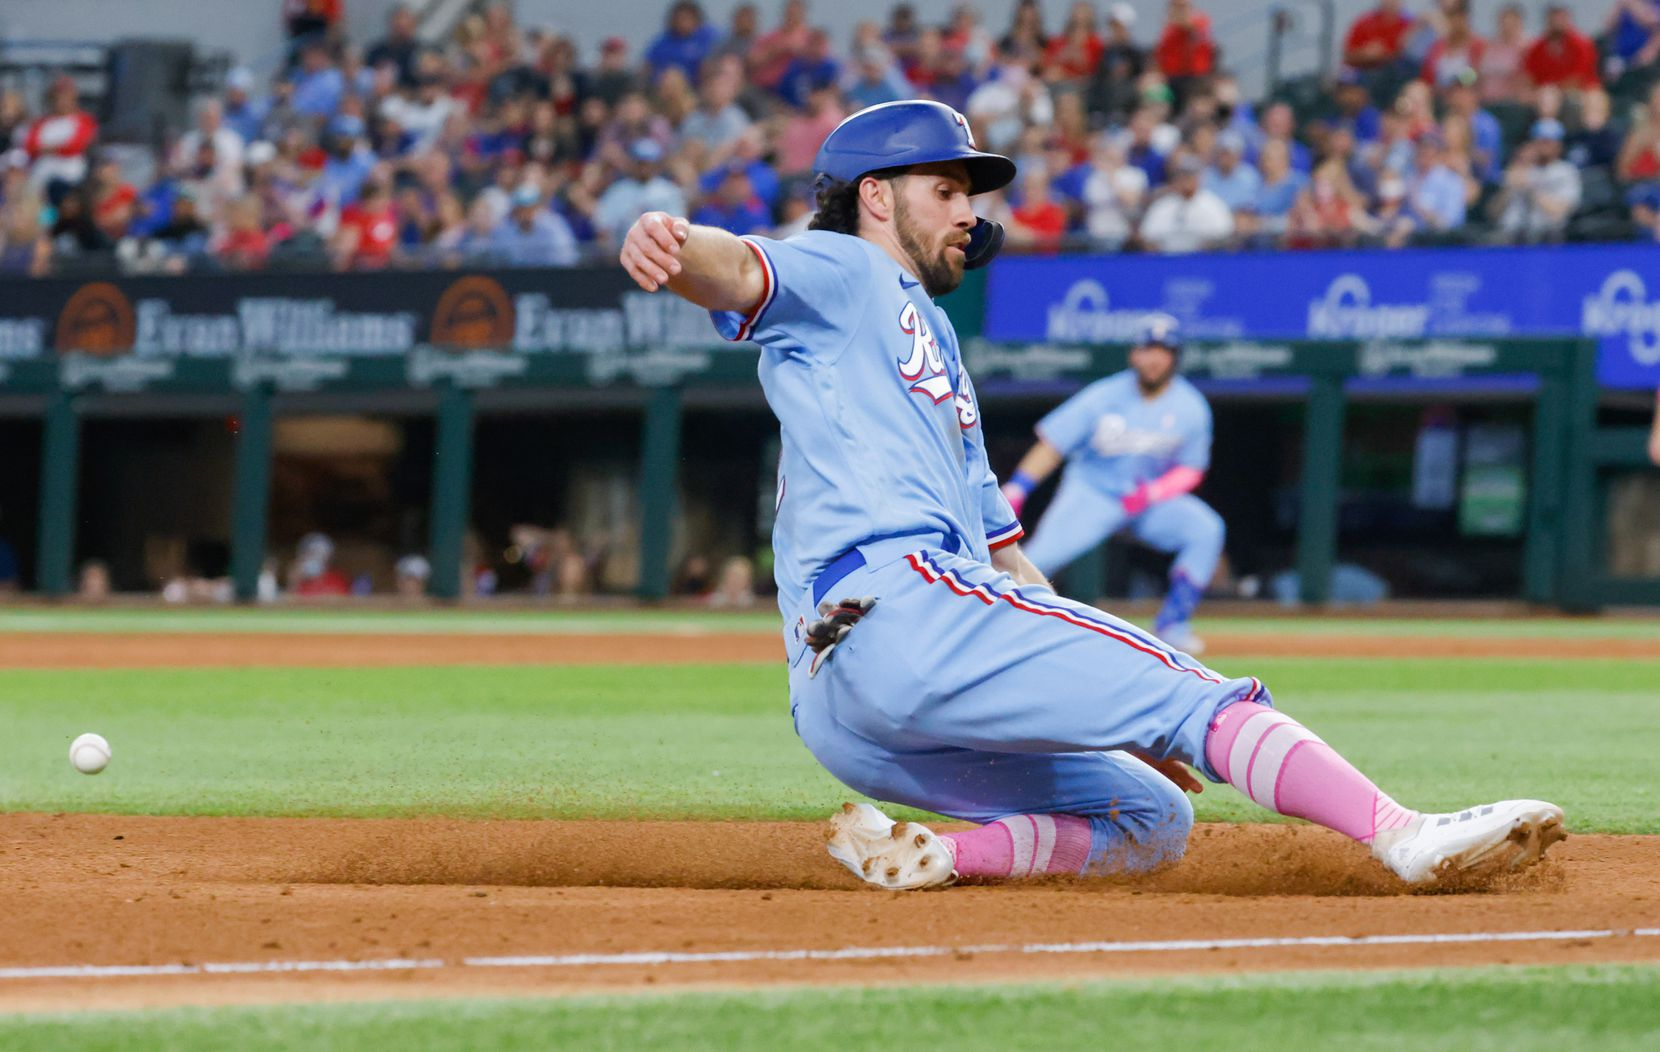 Texas Rangers shortstop Charlie Culberson (2) slides to third off Texas Rangers catcher Jose Trevino (23) single against the Seattle Mariners during the bottom of the sixth at Globe Life Field on Sunday, May 9, 2021, in Arlington. The Rangers won, 10-2. (Juan Figueroa/The Dallas Morning News)